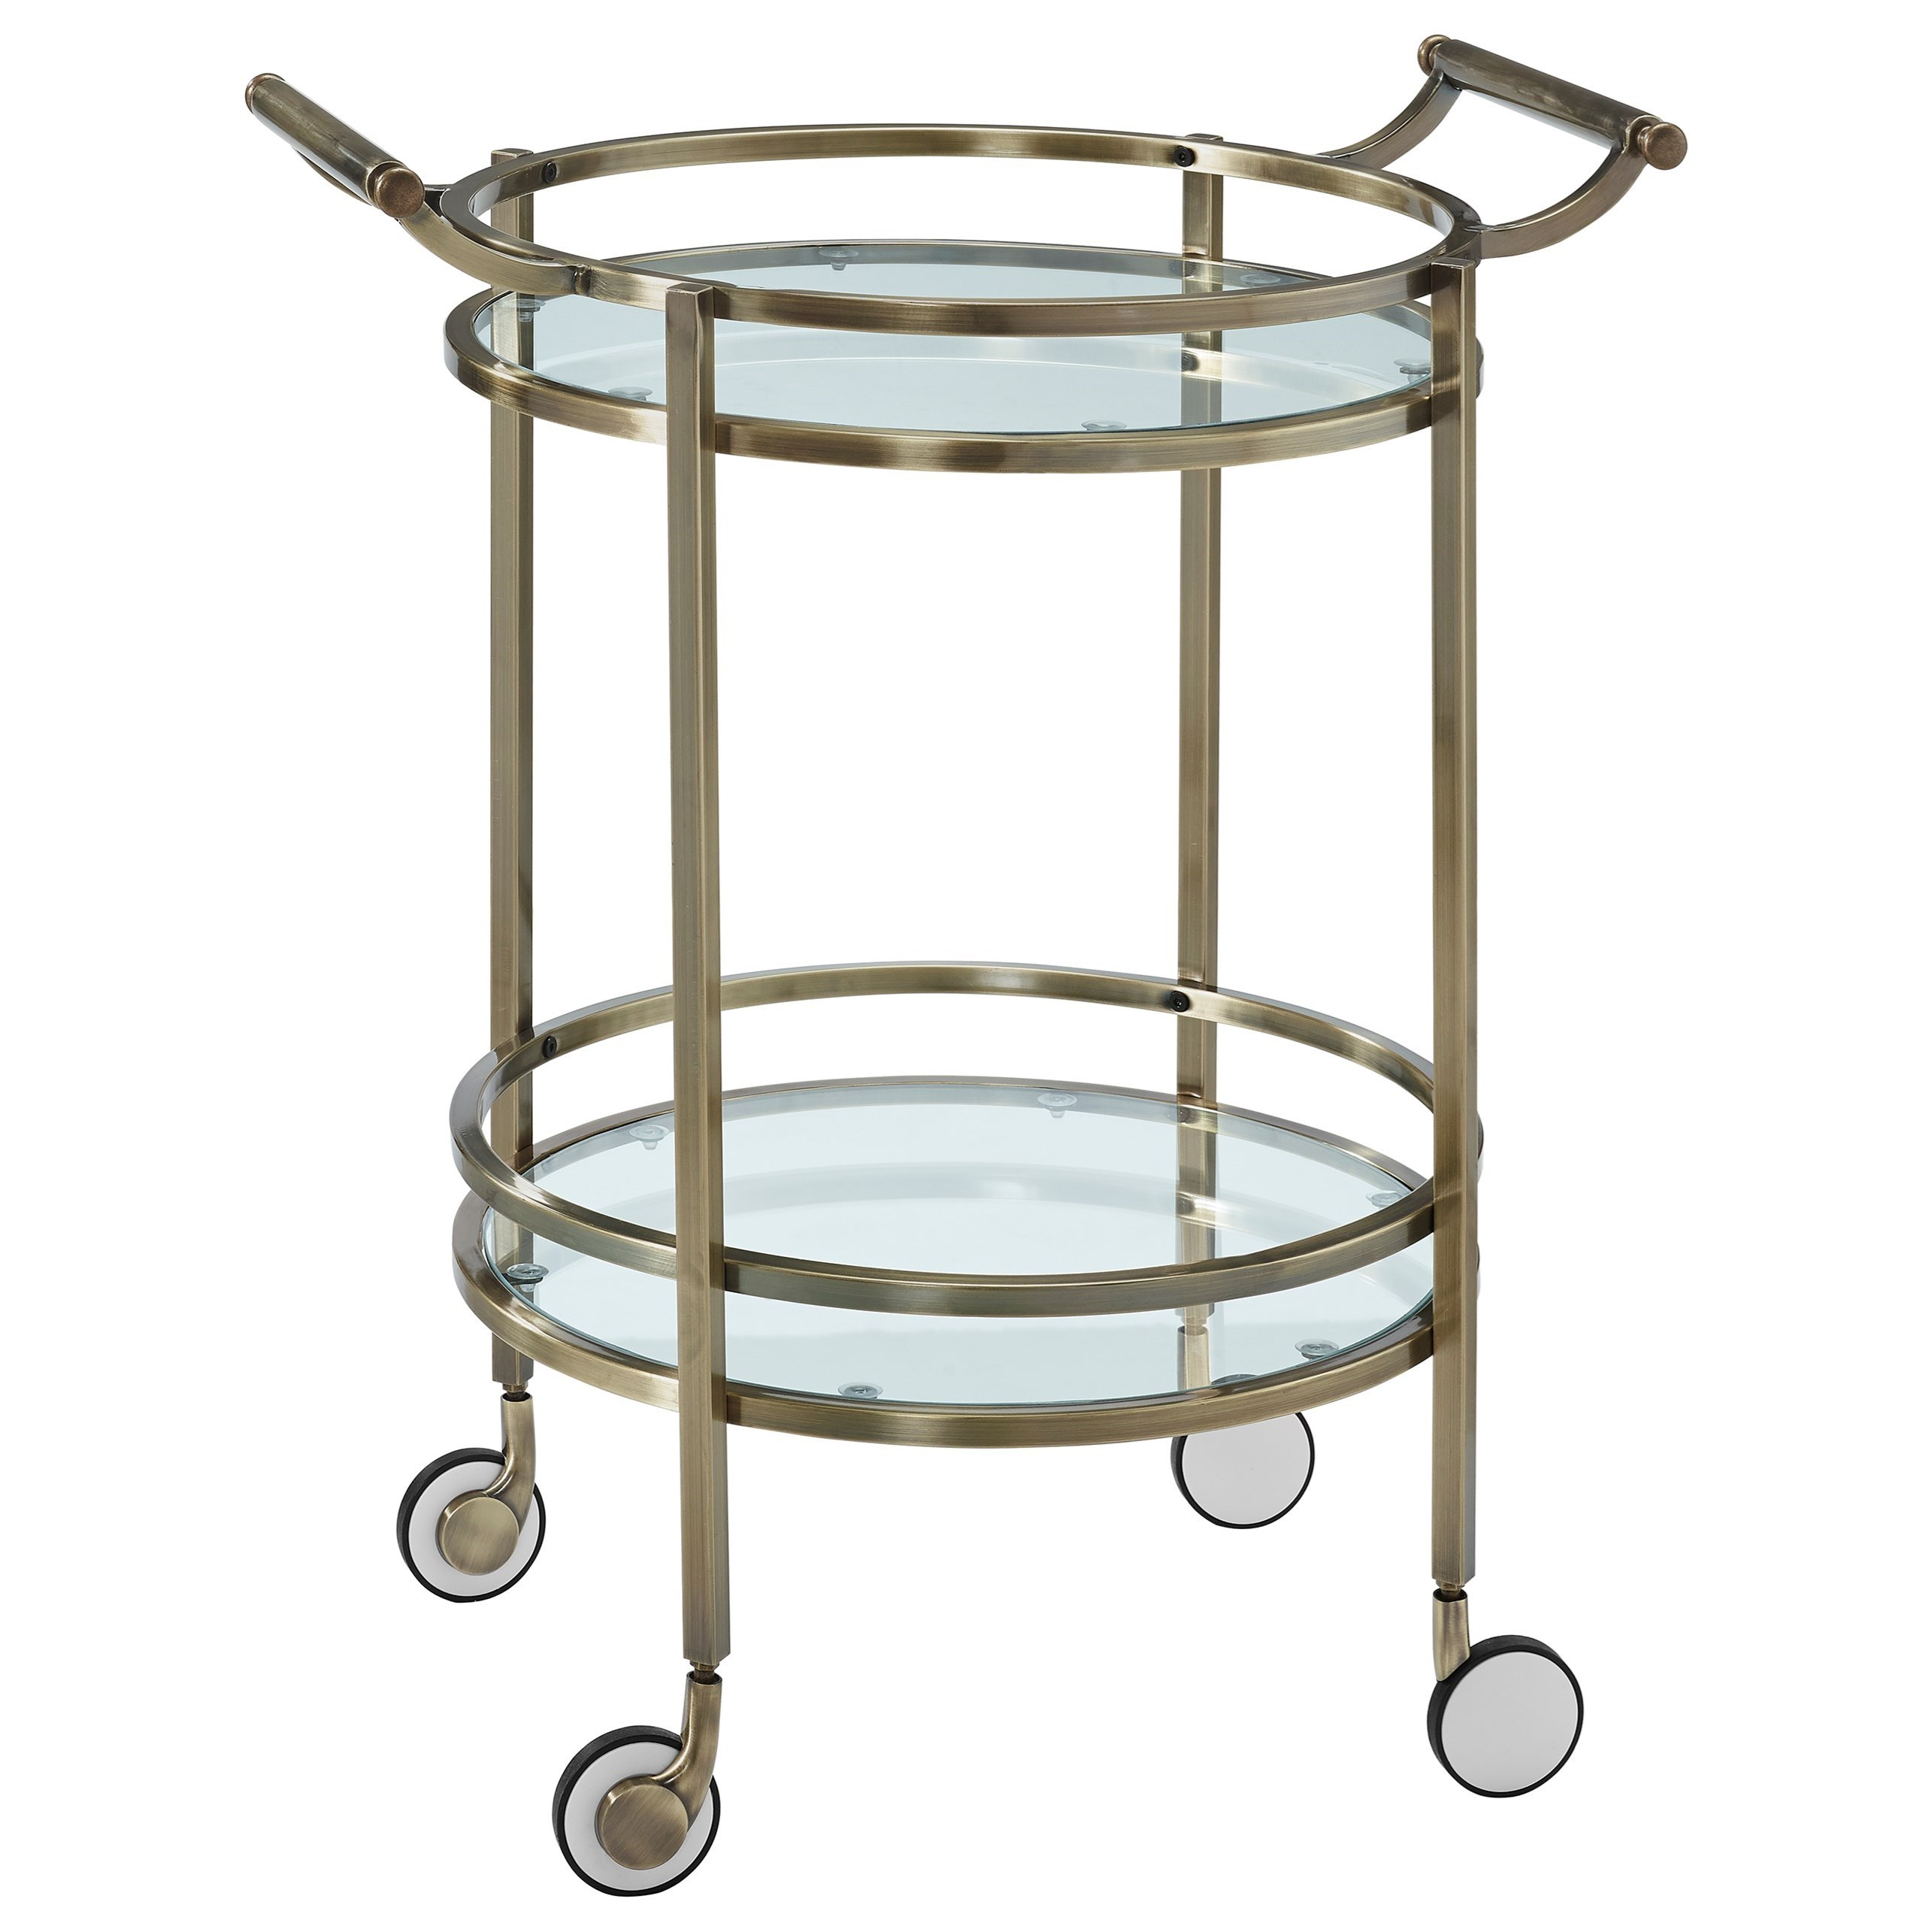 Accent Furniture Antique Brass Round Svc Cart by Powell at Nassau Furniture and Mattress